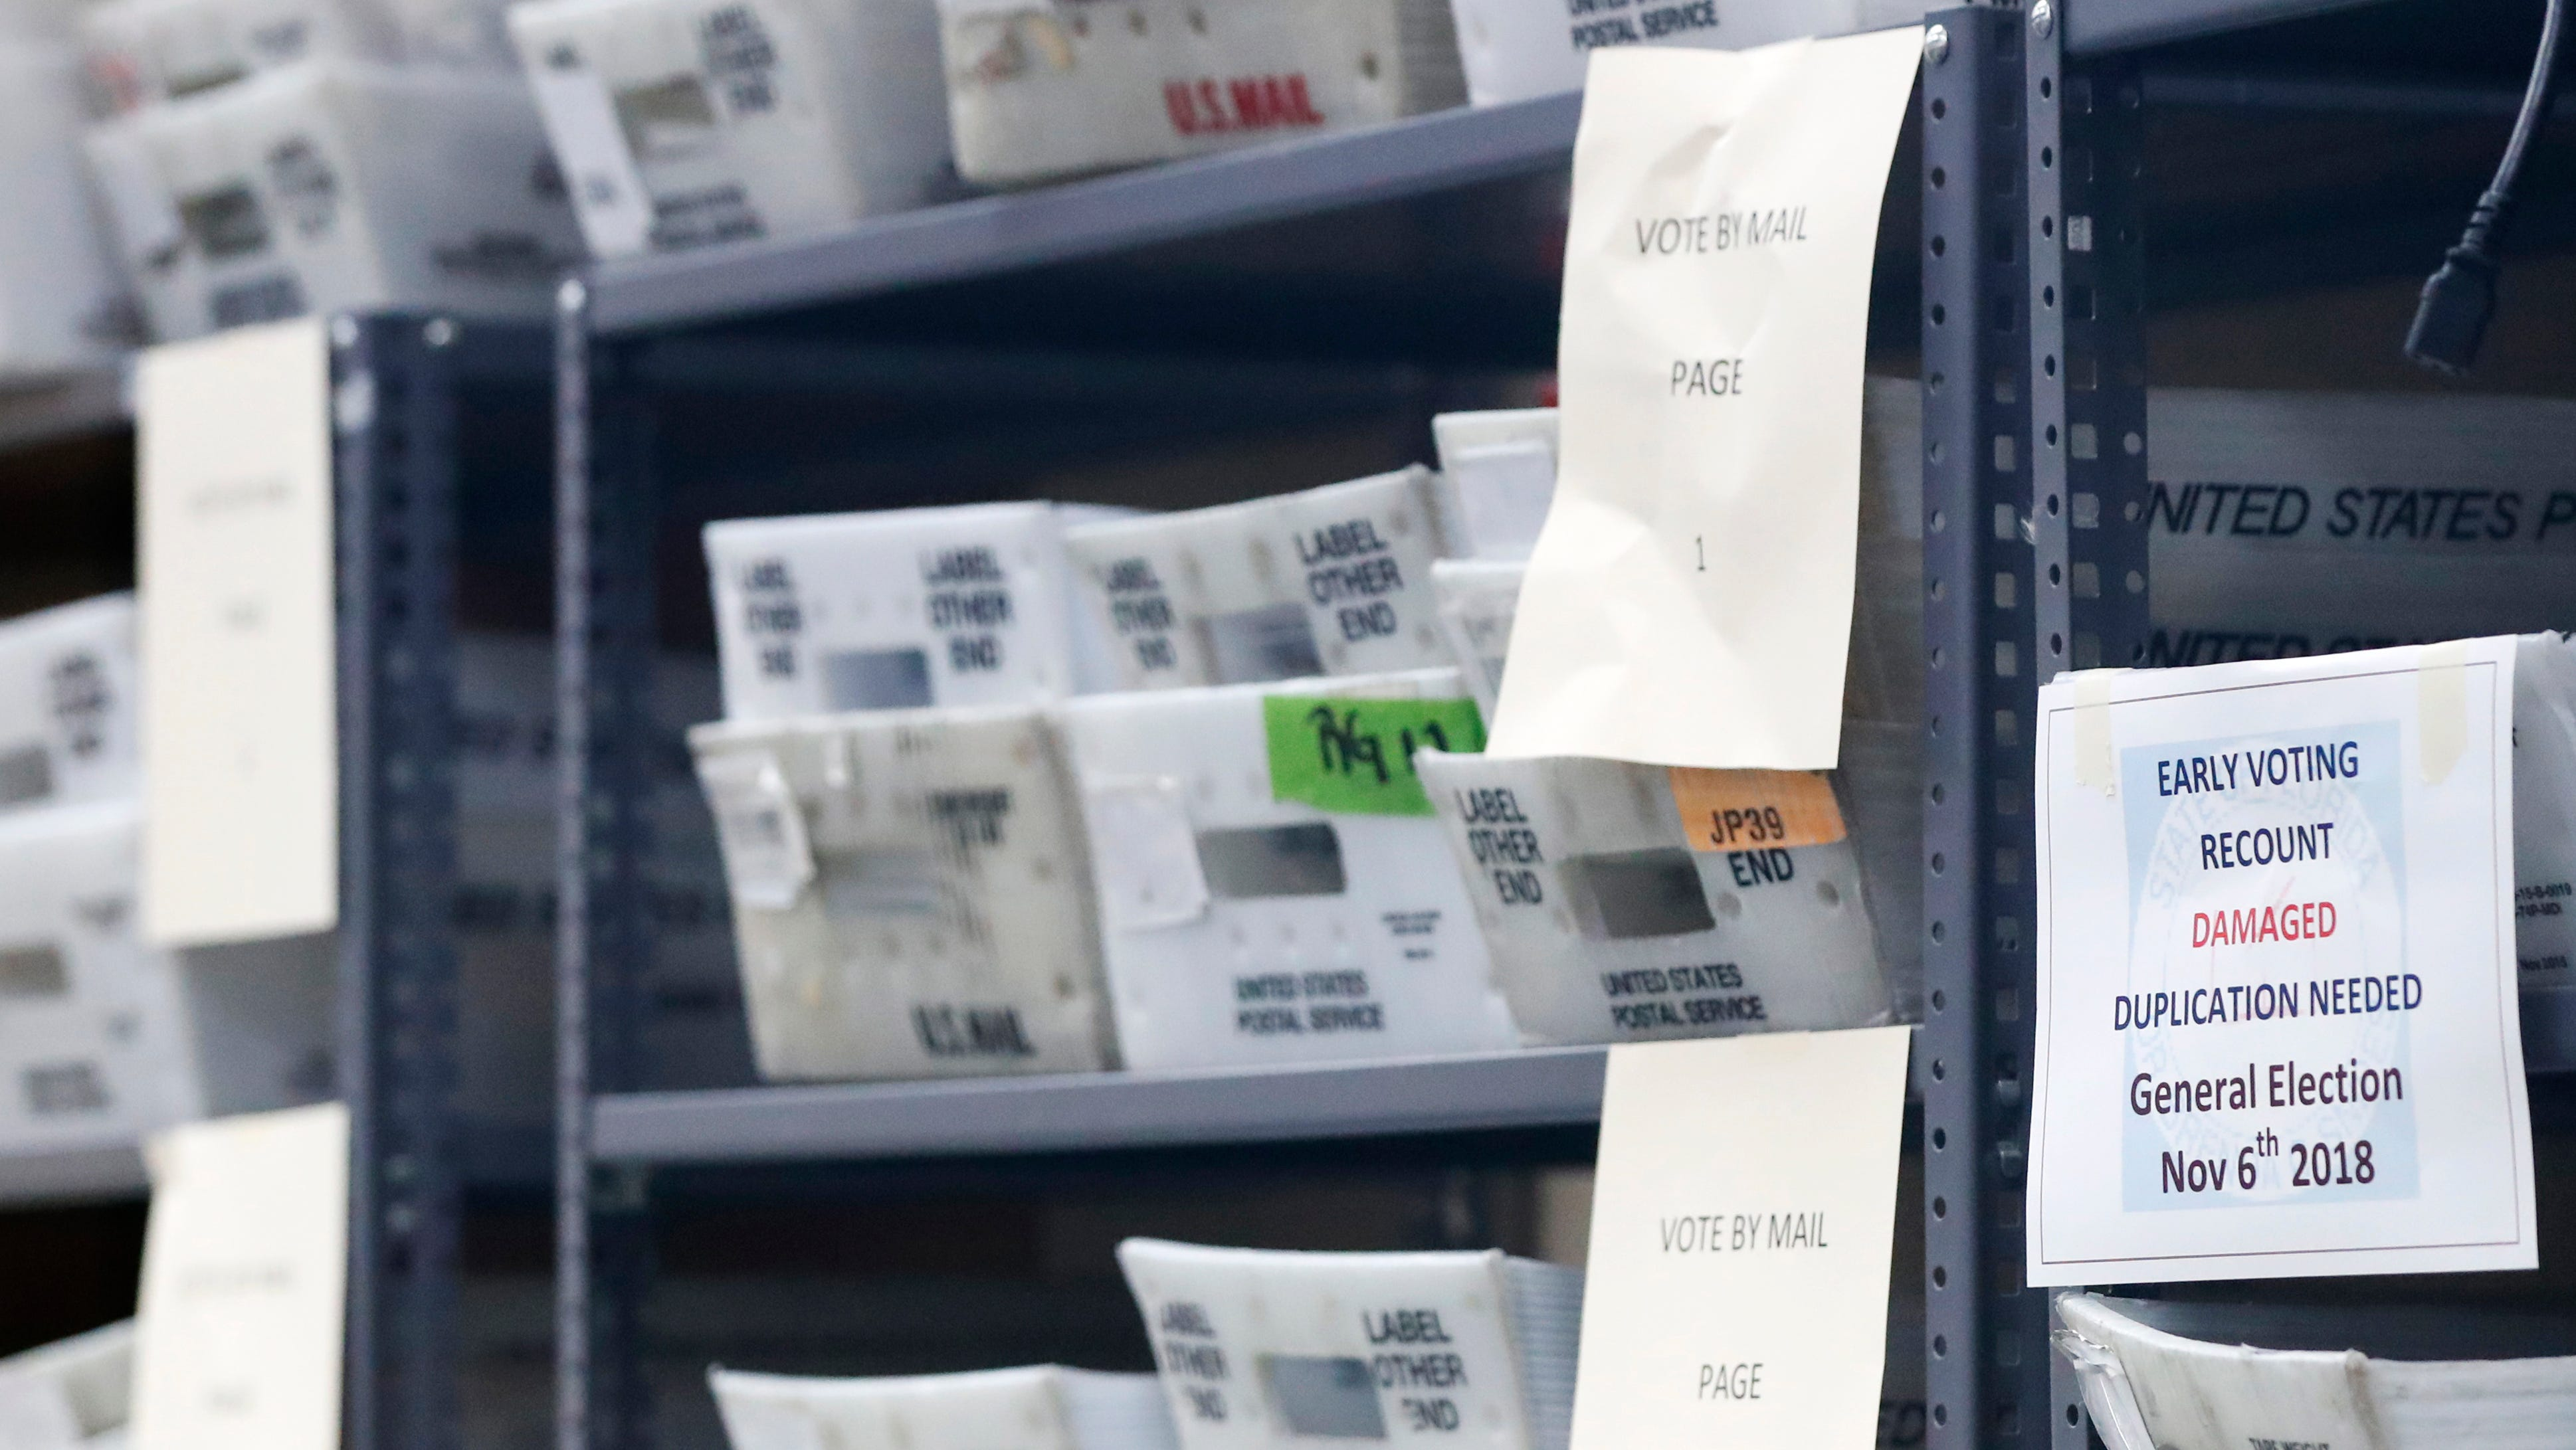 Bins filled with ballots are stacked at the Broward County Supervisor of Elections office as employees count ballots during a recount Wednesday, Nov. 14, 2018, in Lauderhill, Fla.